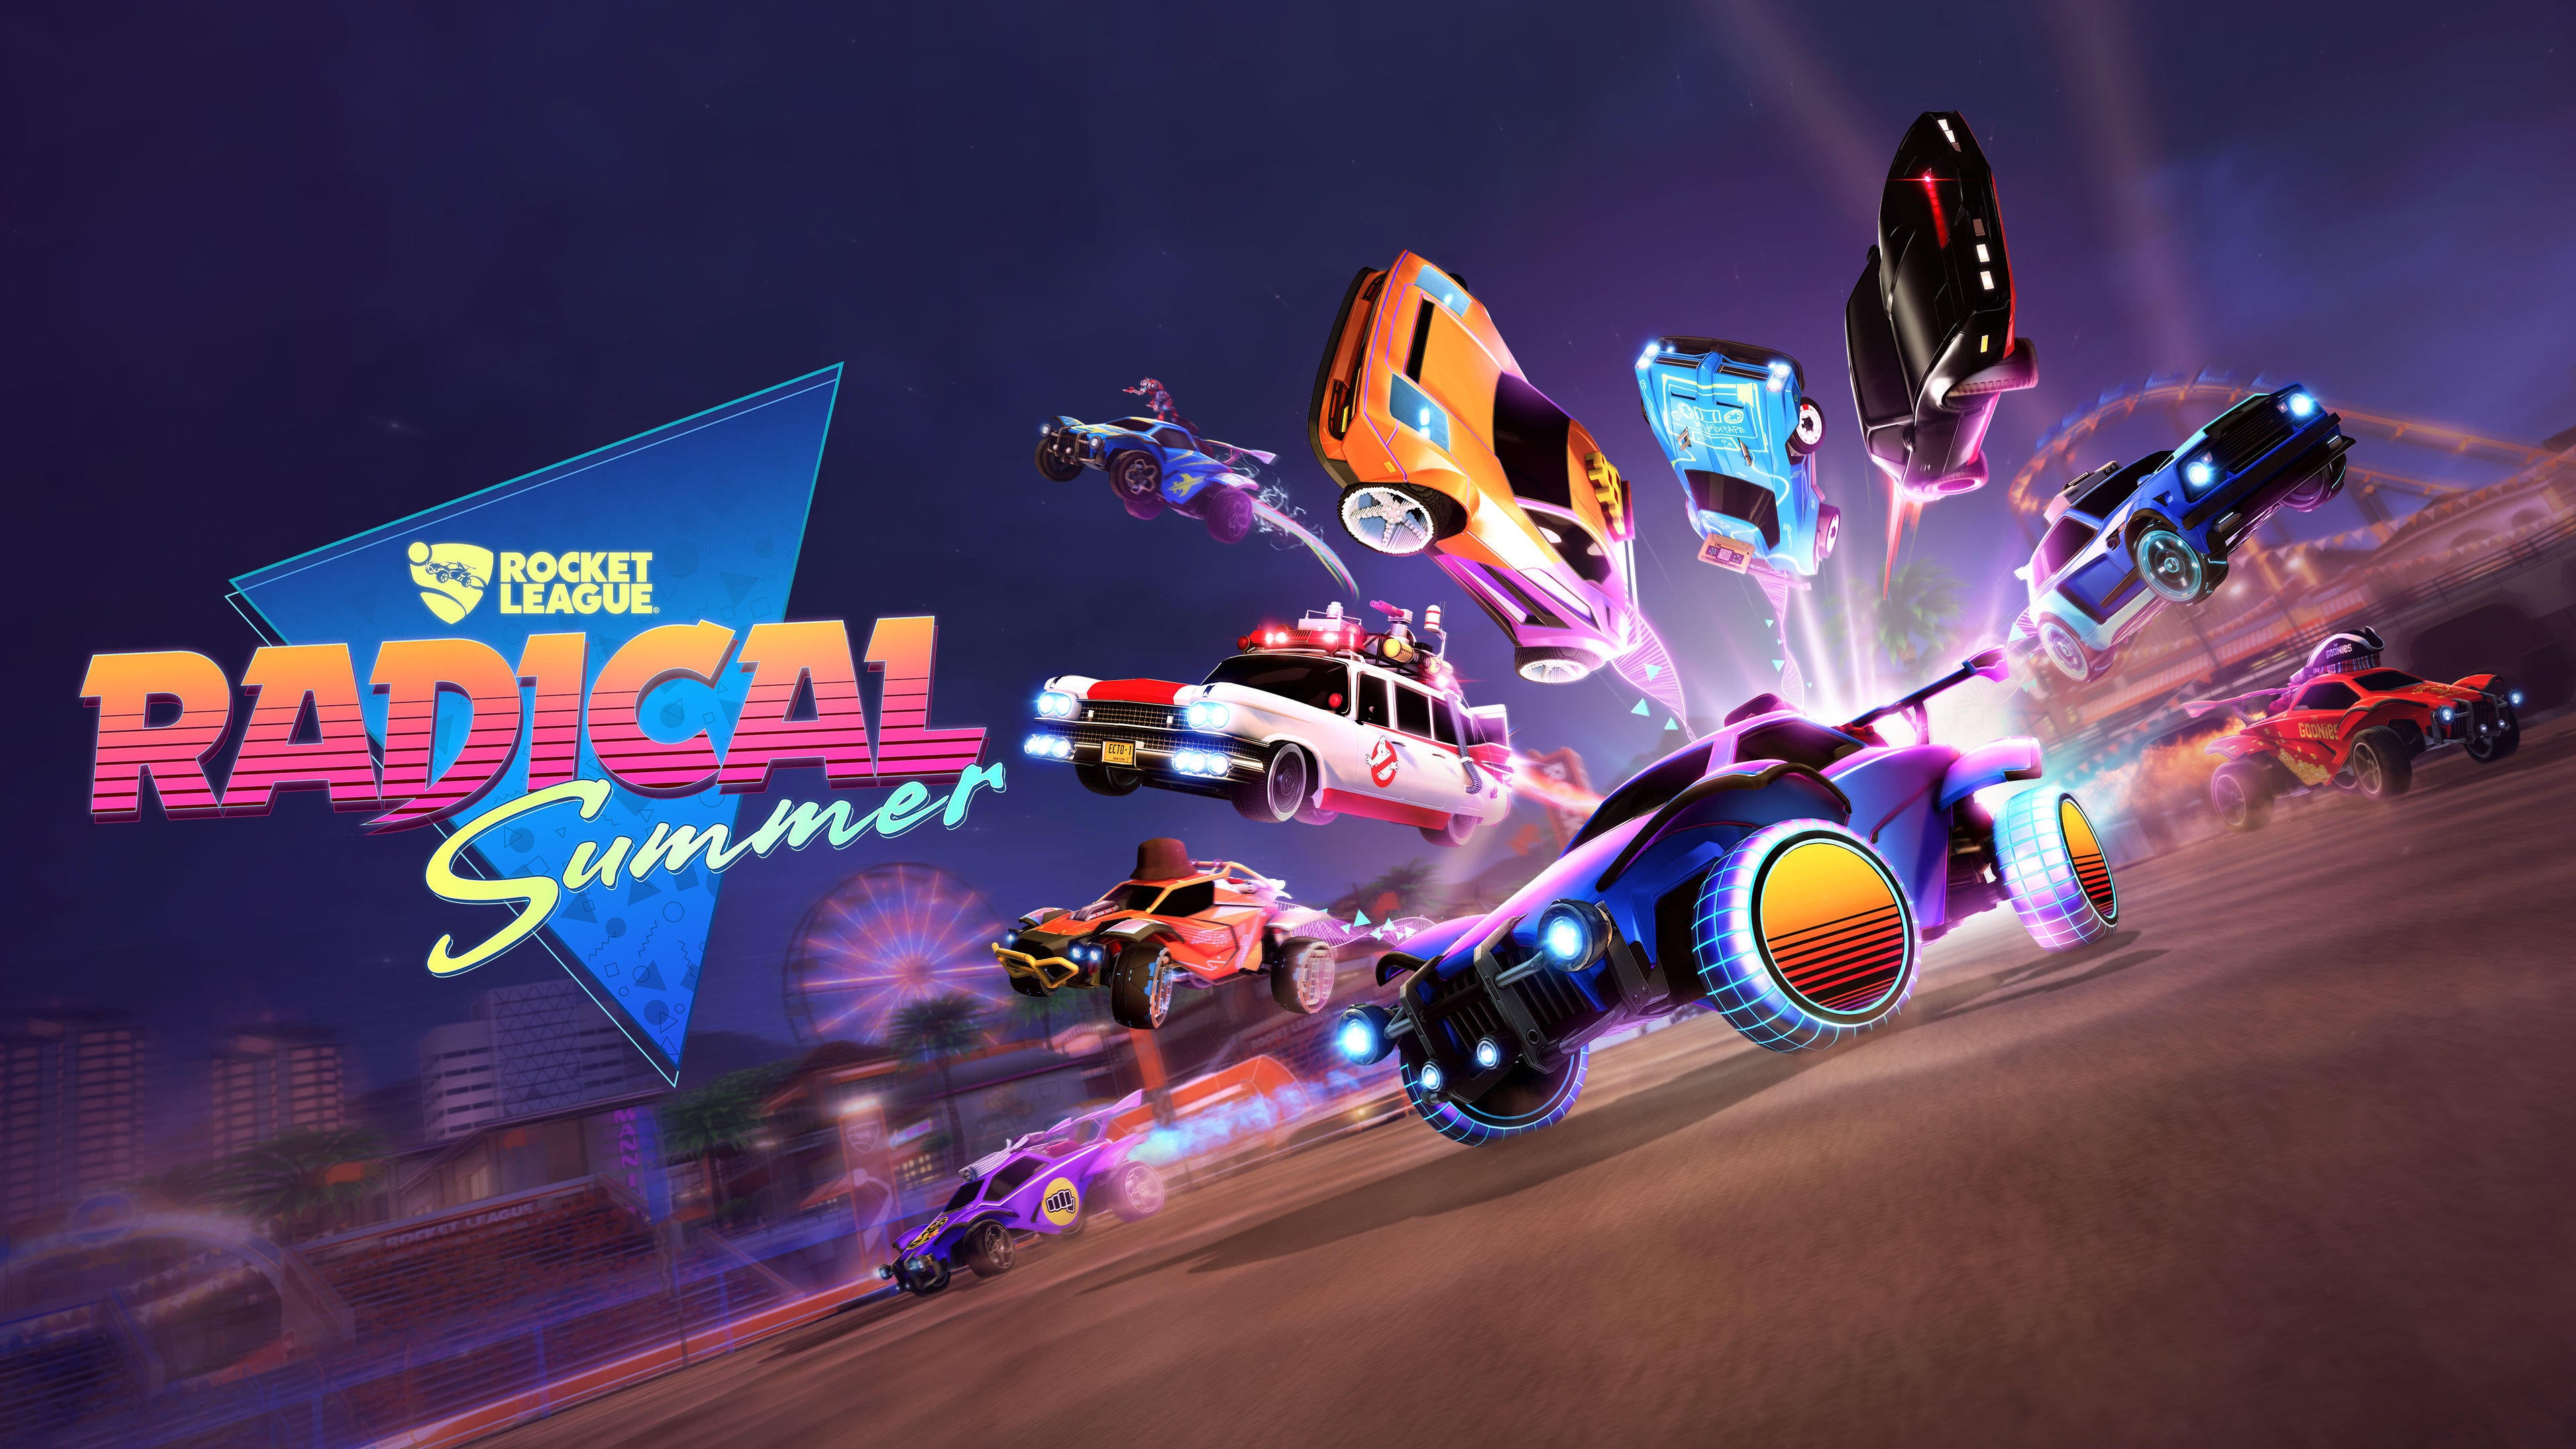 Get Ready for Radical Summer | Rocket League® - Official Site